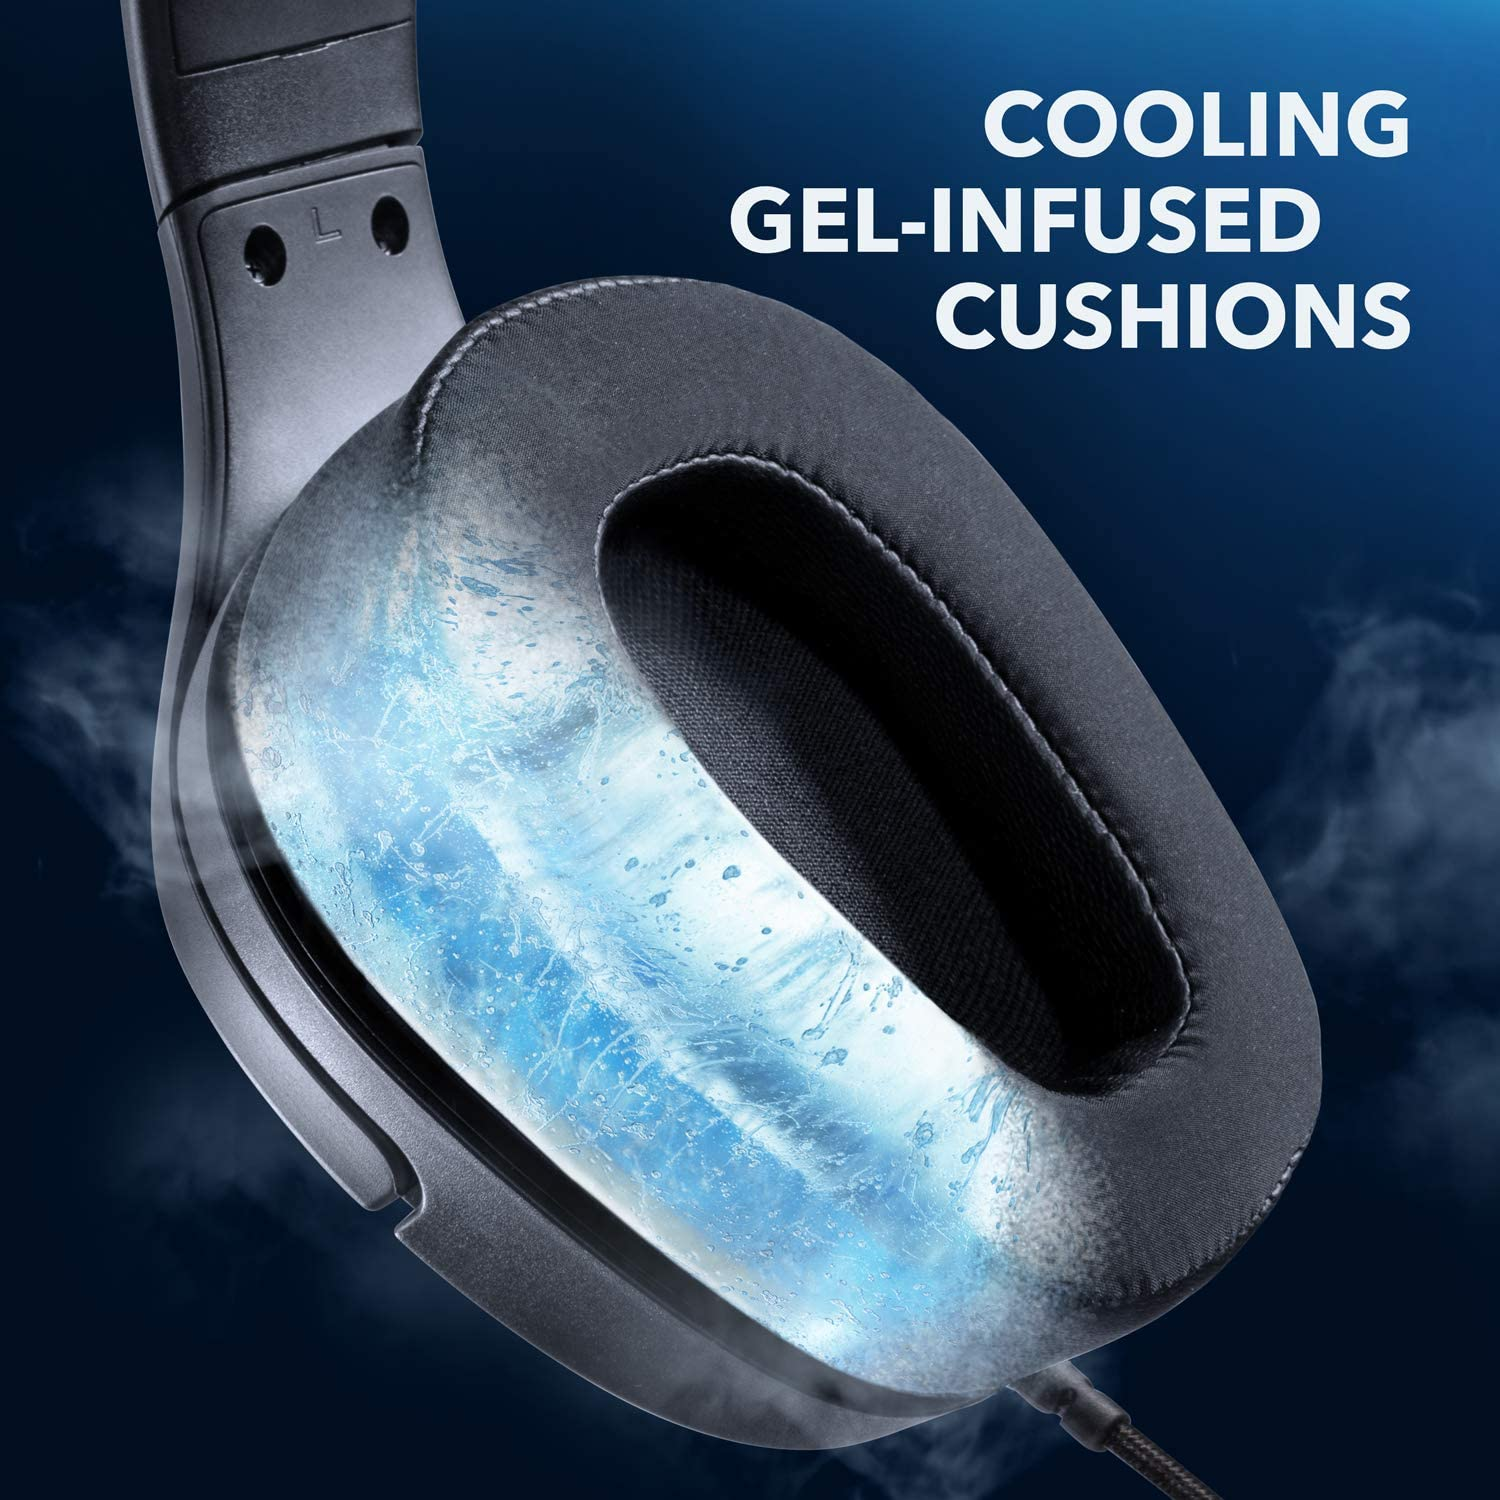 and Cooling Gel-Infused Cushions Anker Soundcore Strike 3 Gaming Headset Noise Isolating Mic PS4 Headset Sound Enhancement for FPS Games 7.1 Surround Sound LED Light PC Headset